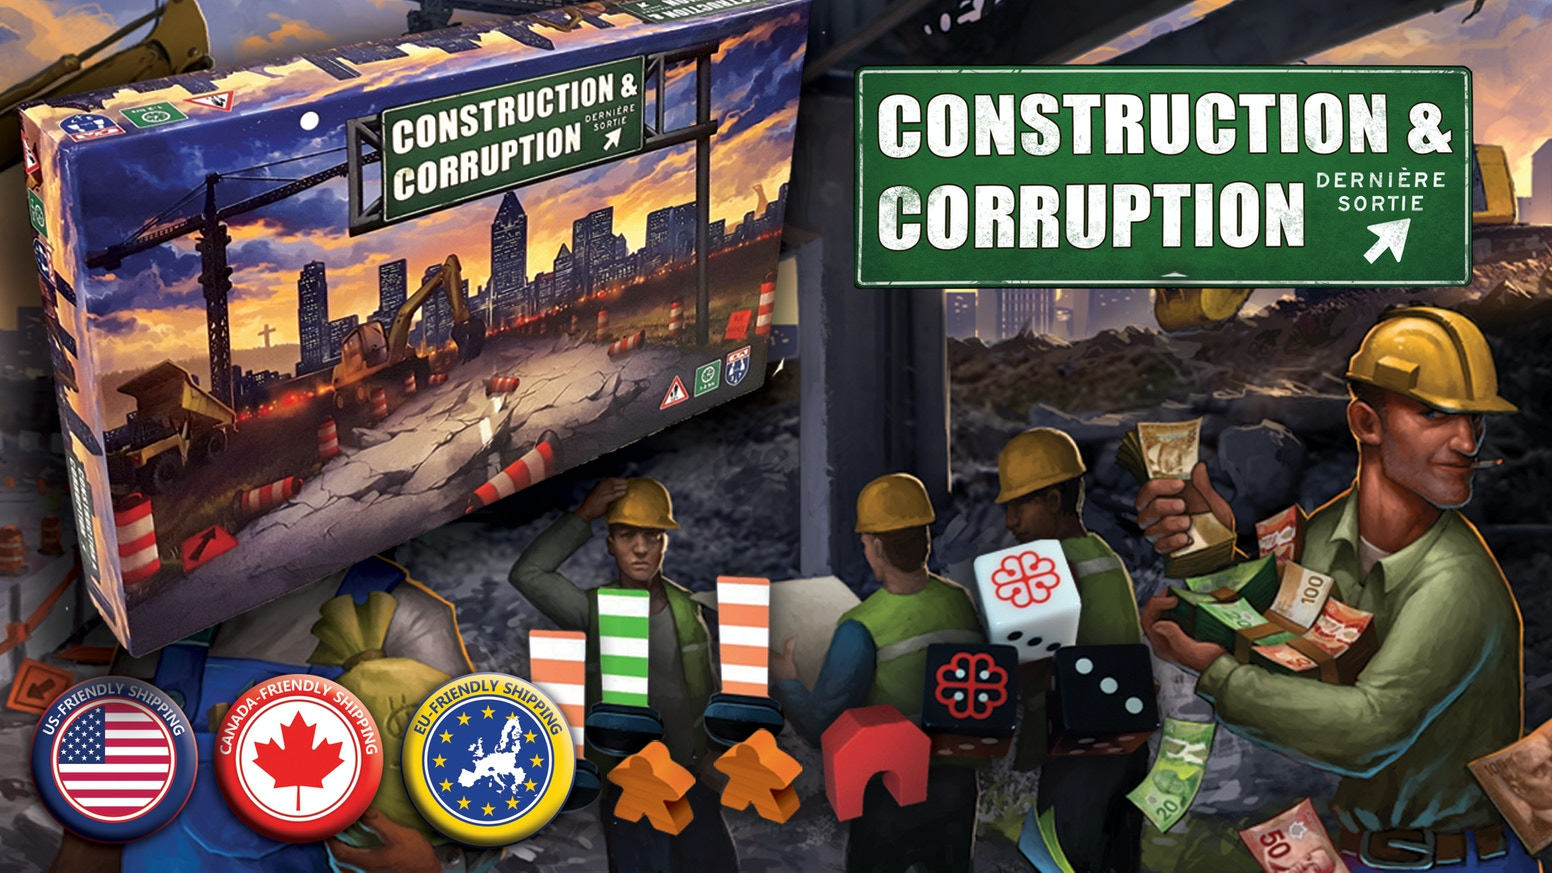 A negotiation game based in Montreal. Filled with shady dealing, double-crosses, and of course, construction.